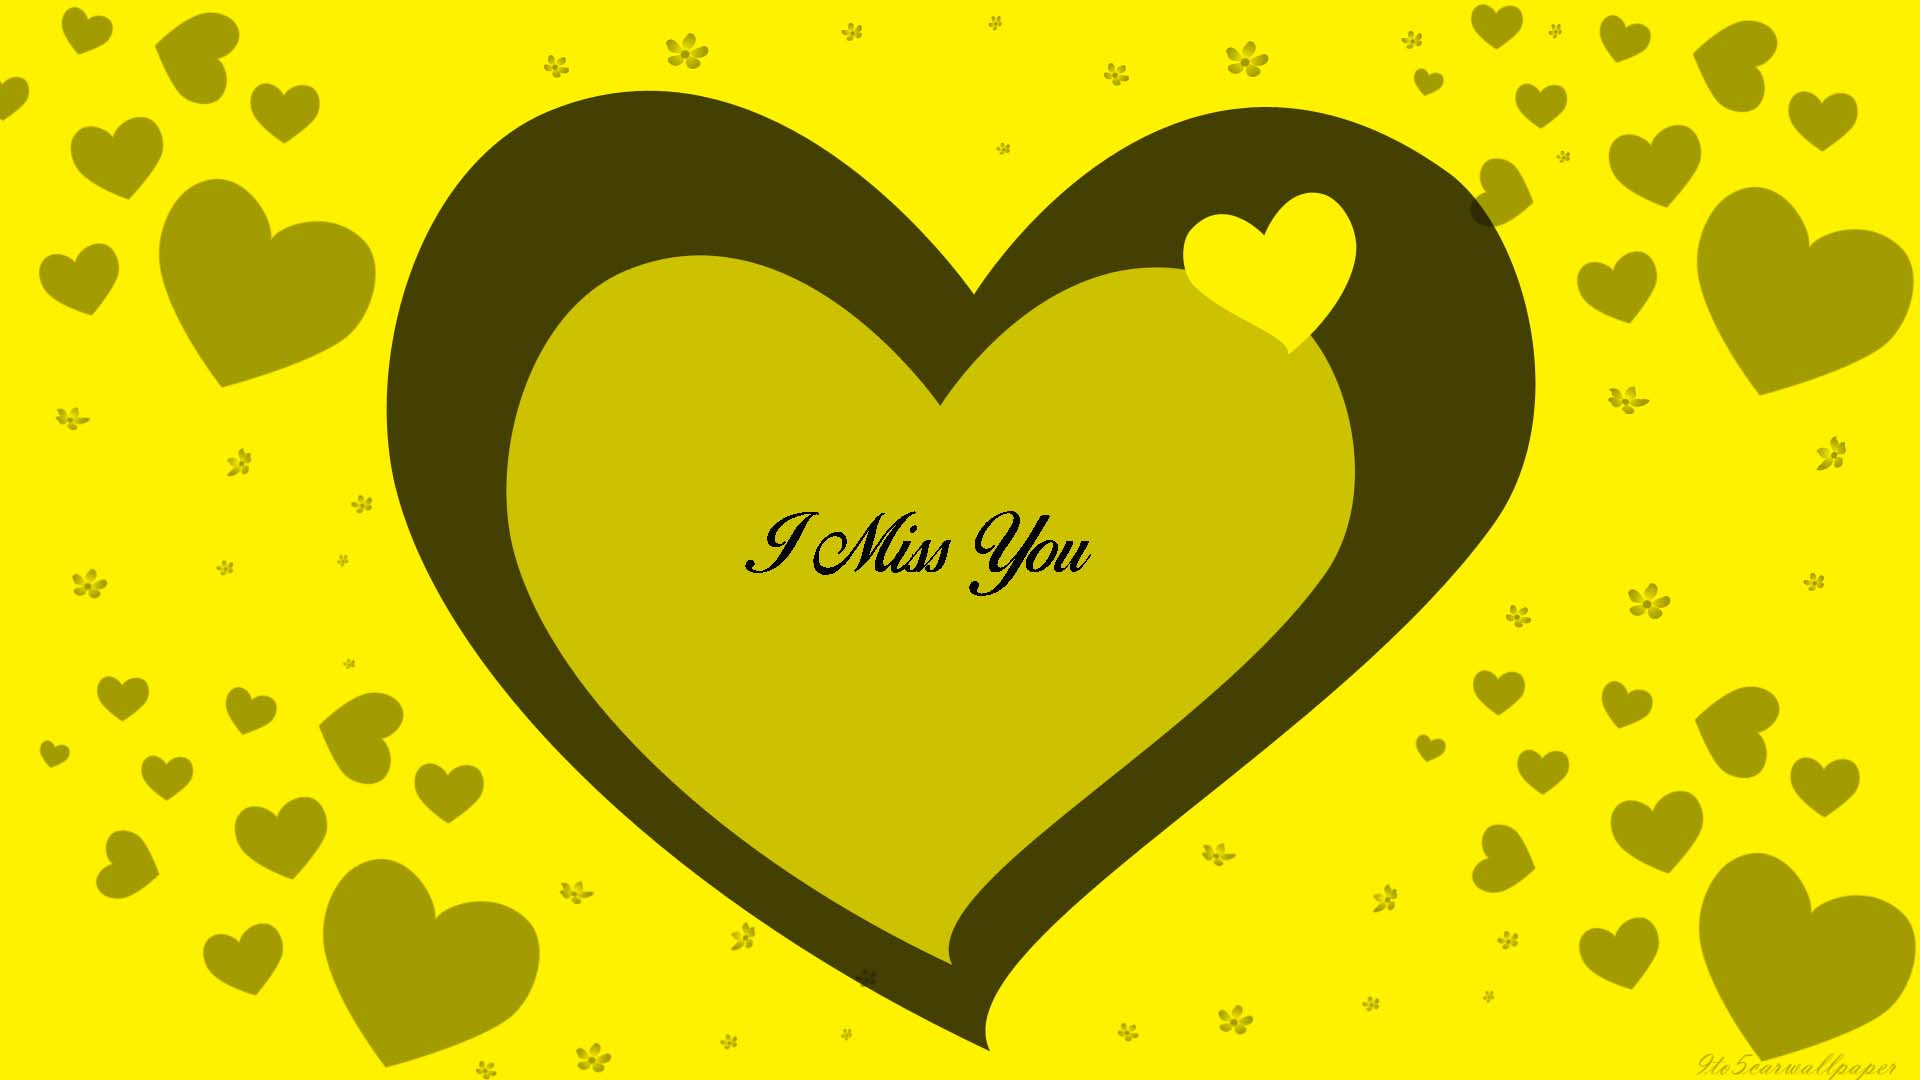 I Miss You My Love Wallpapers Images Download My Site